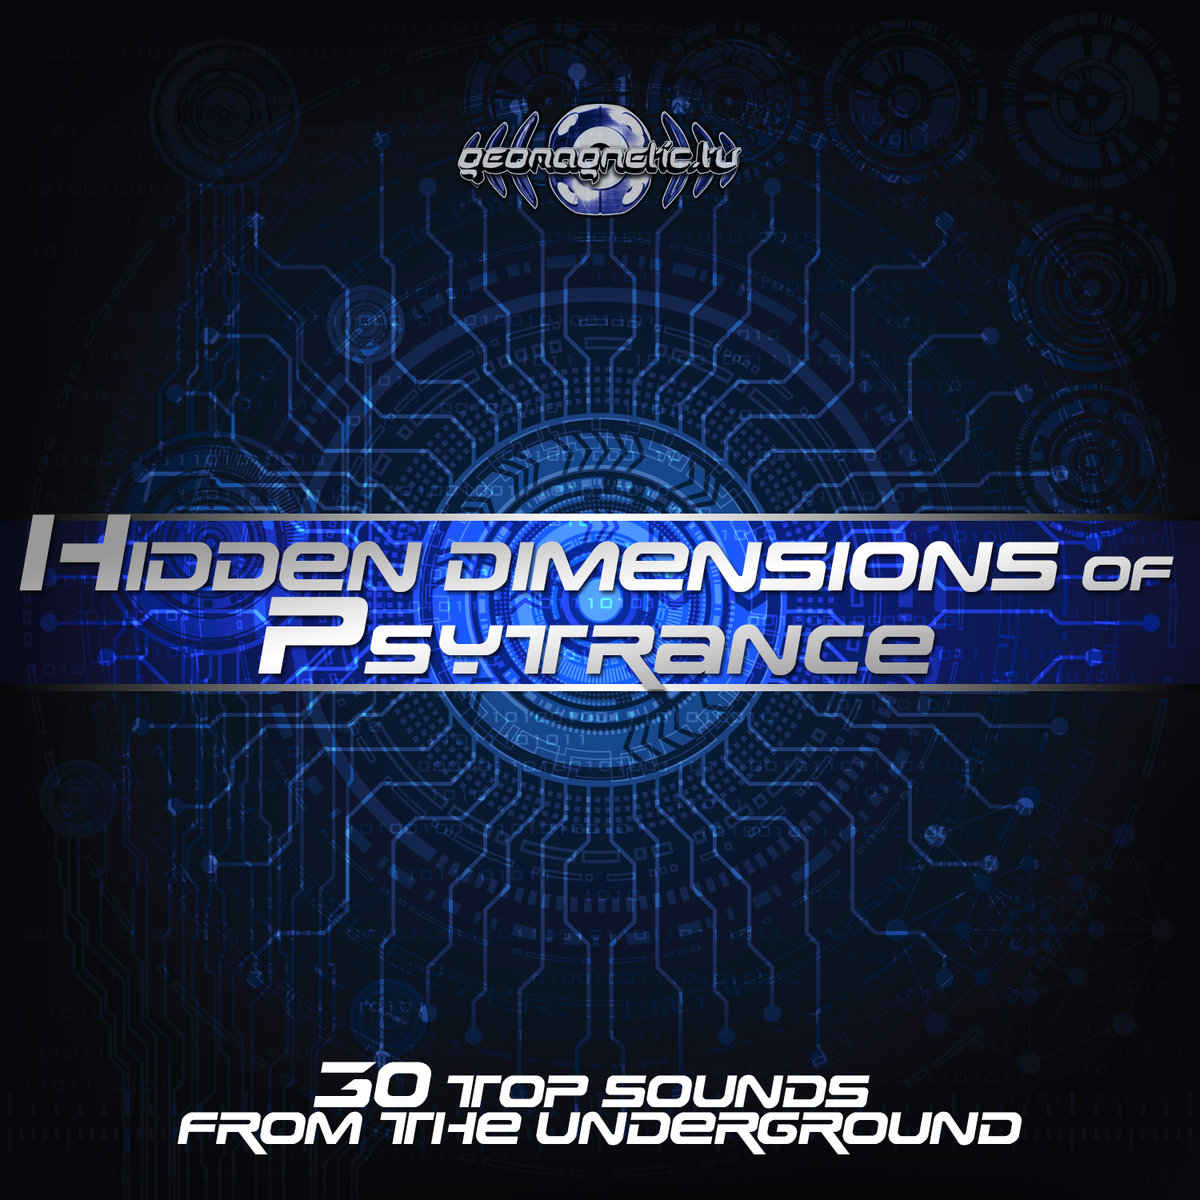 Analog Minds - Radio Lifting @ 'Various Artists - Hidden Dimensions of Psytrance (30 Top Sounds From The Underground)' album (electronic, goa)